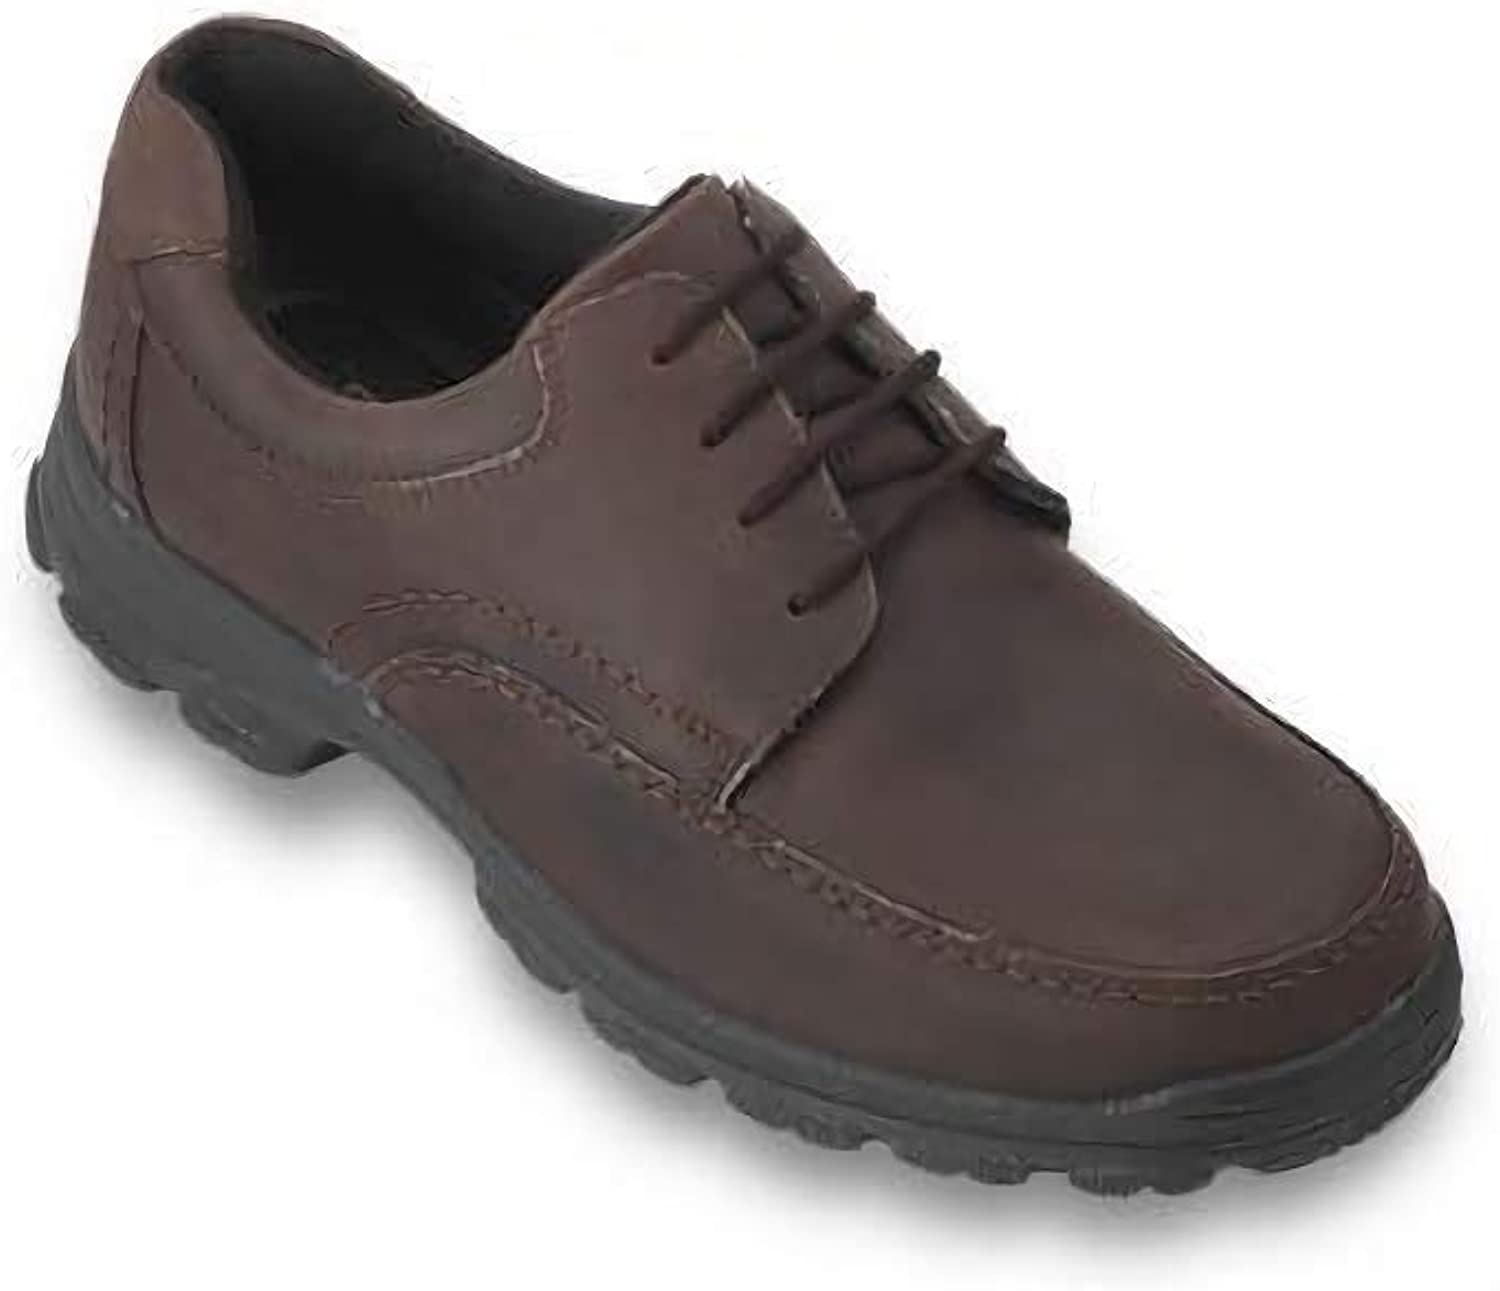 Db shoes Weymouth 4 Eyelet Gibson Mudguard LACE in Nubuck Brown (4E FIT)